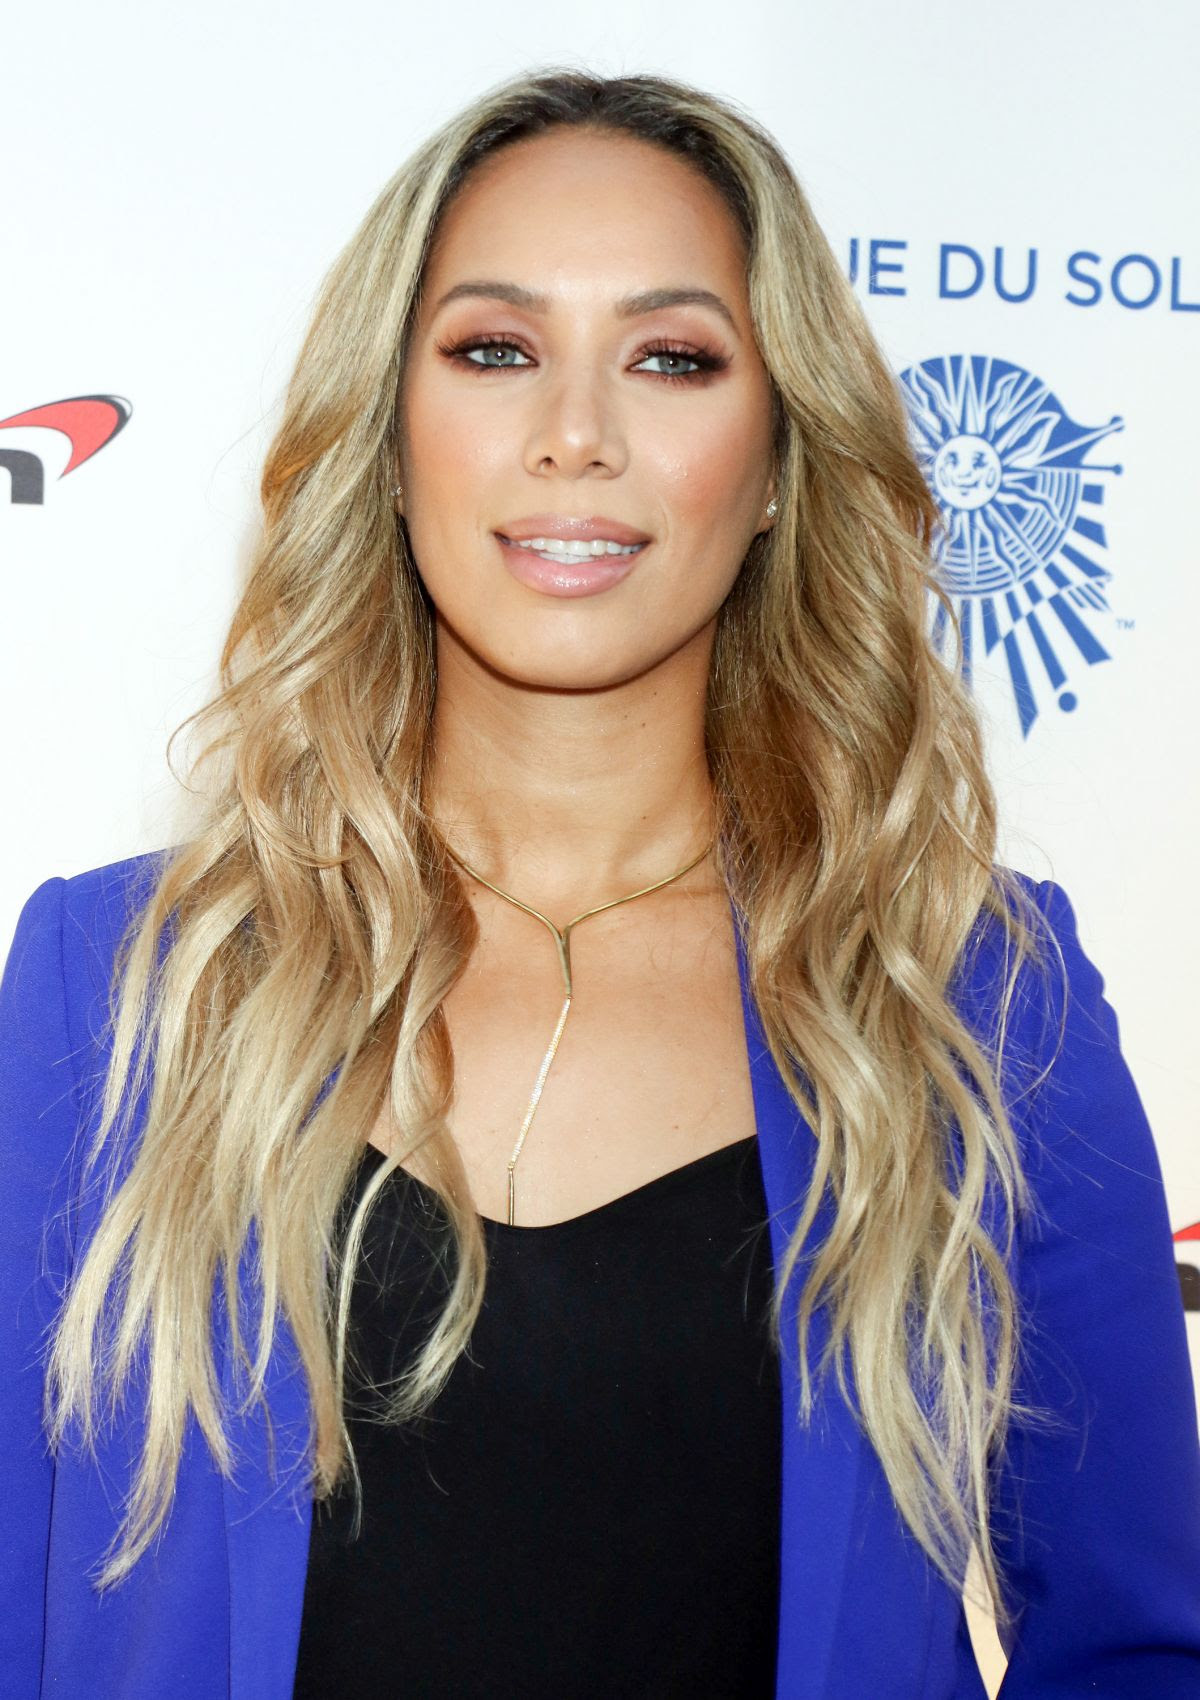 LEONA LEWIS at One Night for One Drop Blue Carpet in Las Vegas 03/19/2016